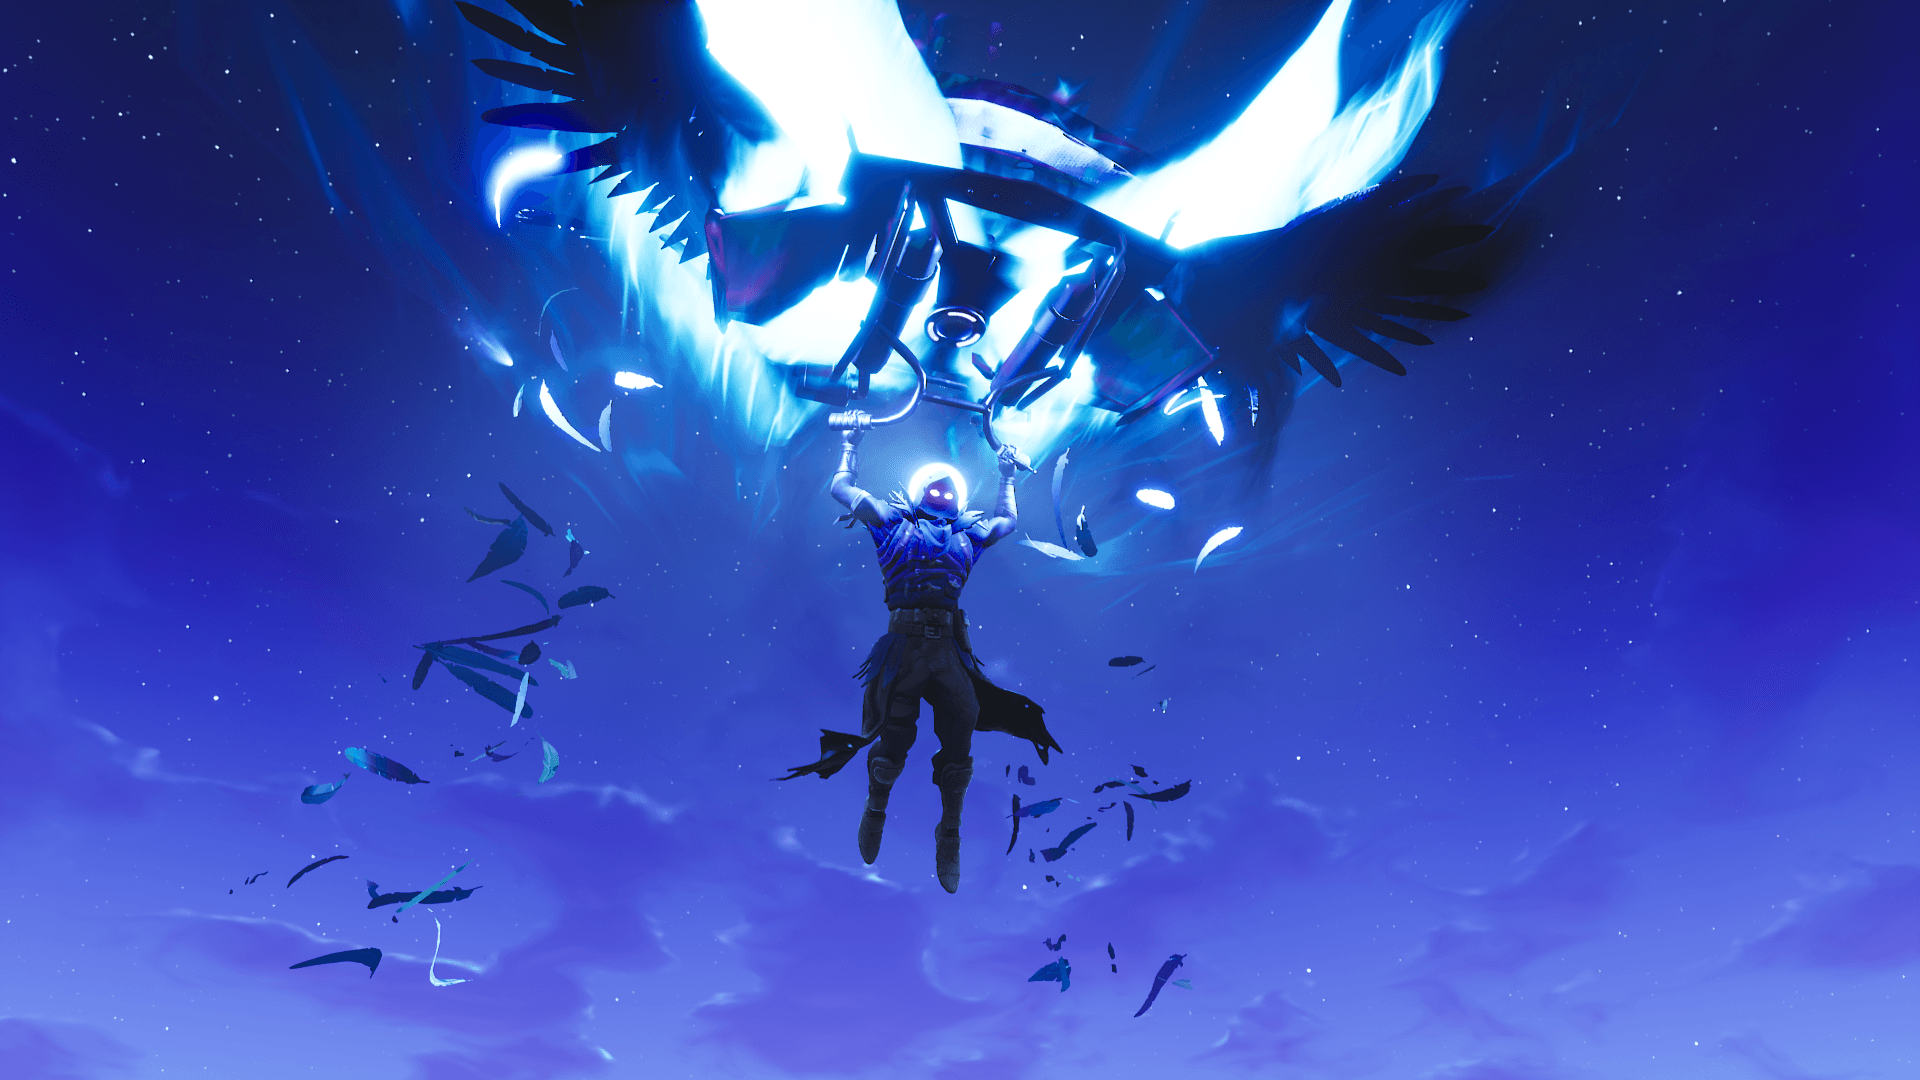 Fortnite Raven Wallpapers   Top Fortnite Raven Backgrounds 1920x1080